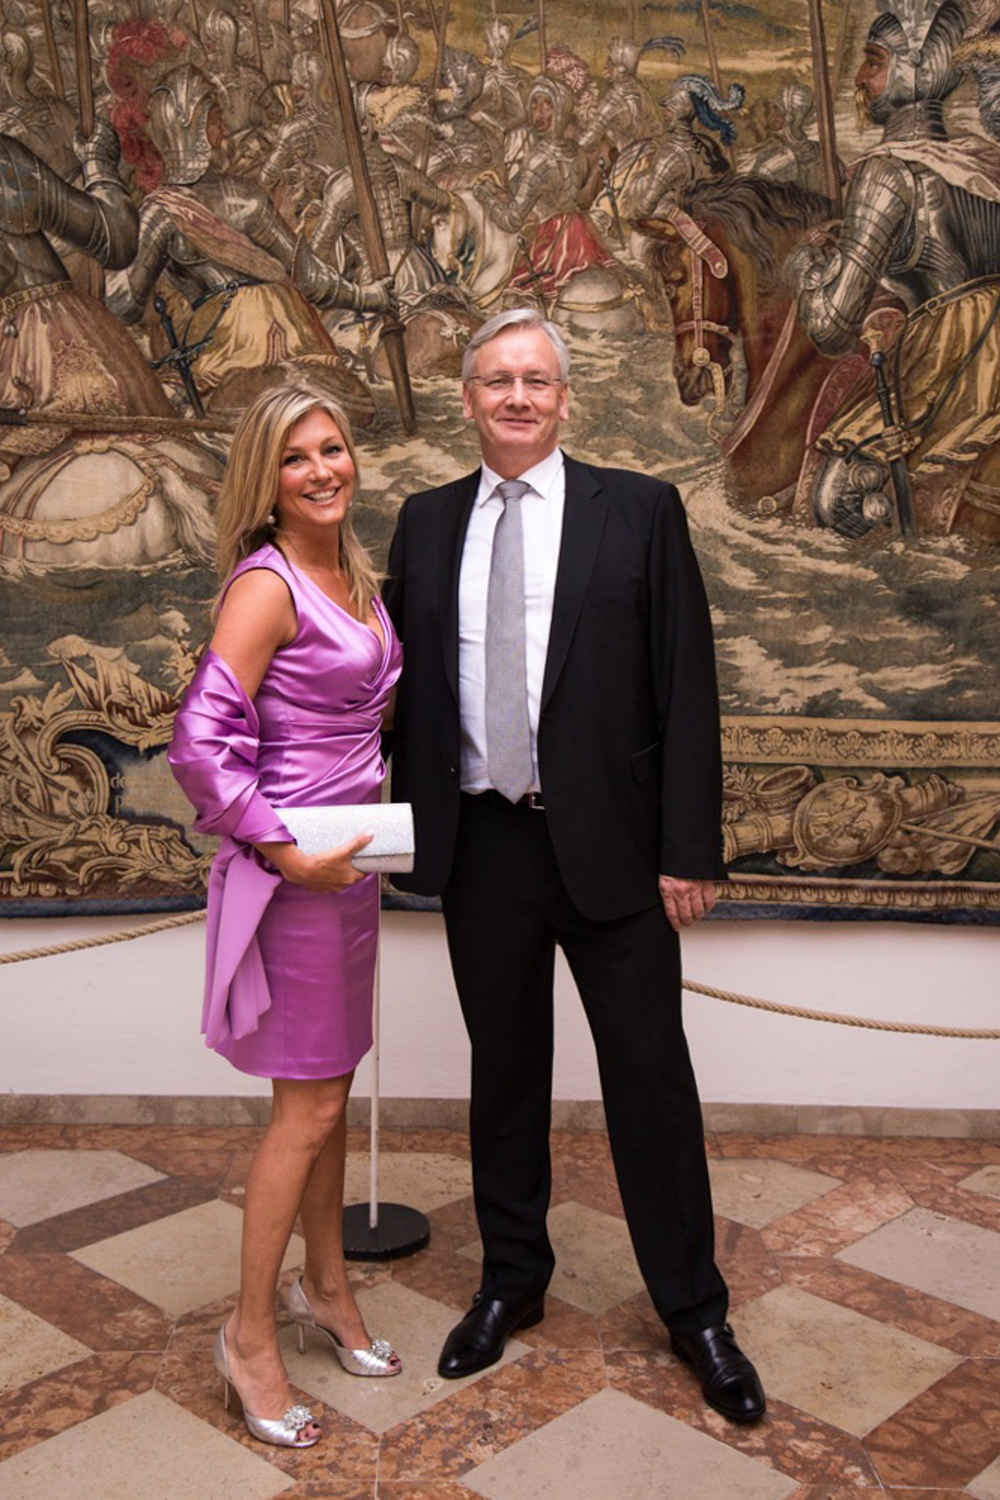 Henrik Starup-Hansen and I Just before entering the Galla with Crown Prince Couple of Denmark Mary and Frederik.   Crown Prince Frederik and  Crown Princess Mary of Denmark  receive guests at the Grand Dinner at the Residency during their visit in Germany on May 20, 2015 in Munich, Germany.  May 20, 2015